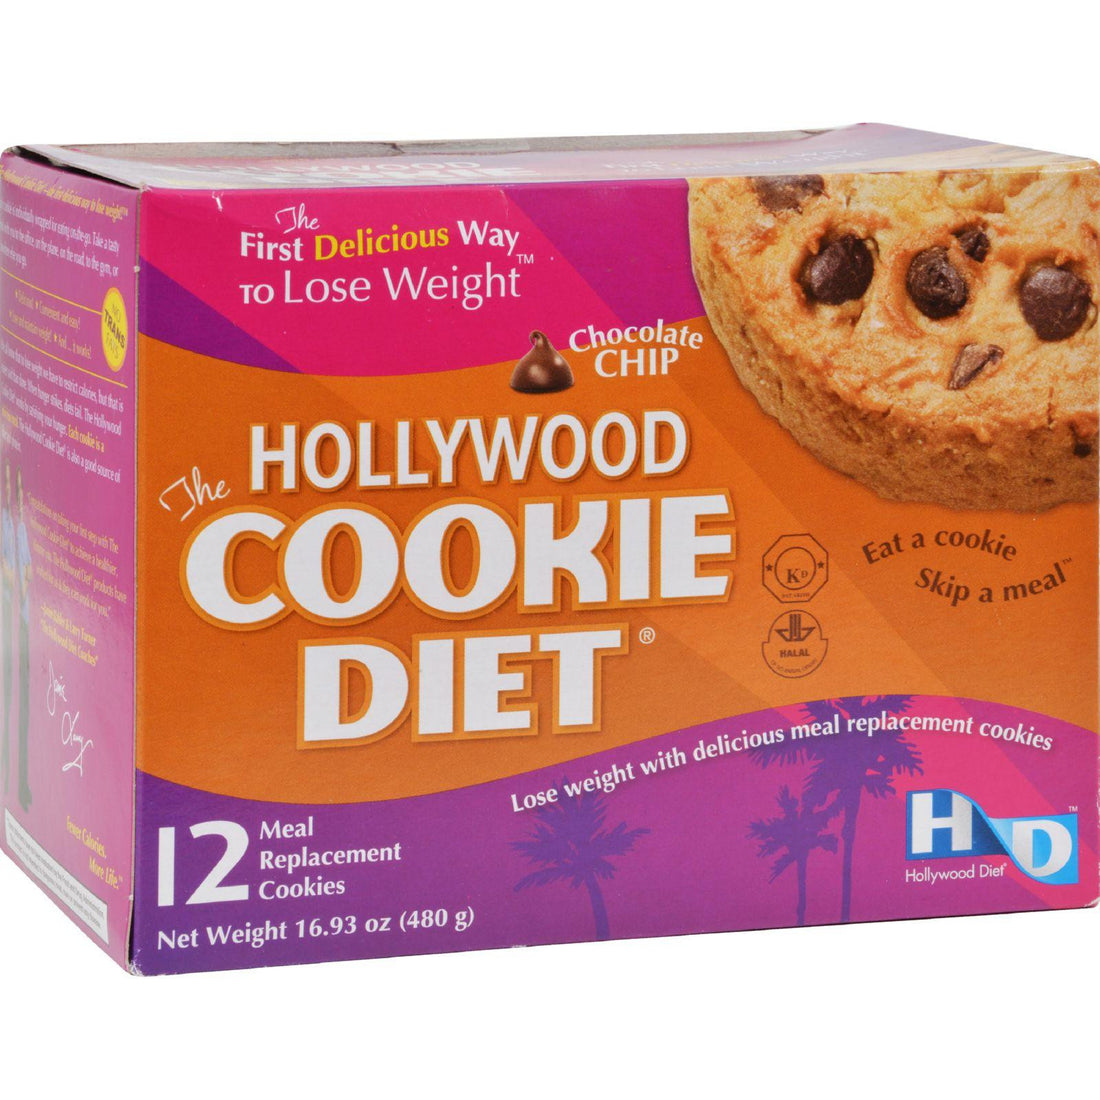 Mother Mantis: Hollywood Diet Miracle Products Cookie Diet Meal Replacement Cookie Chocolate Chip - 12 Cookies Hollywood Diet